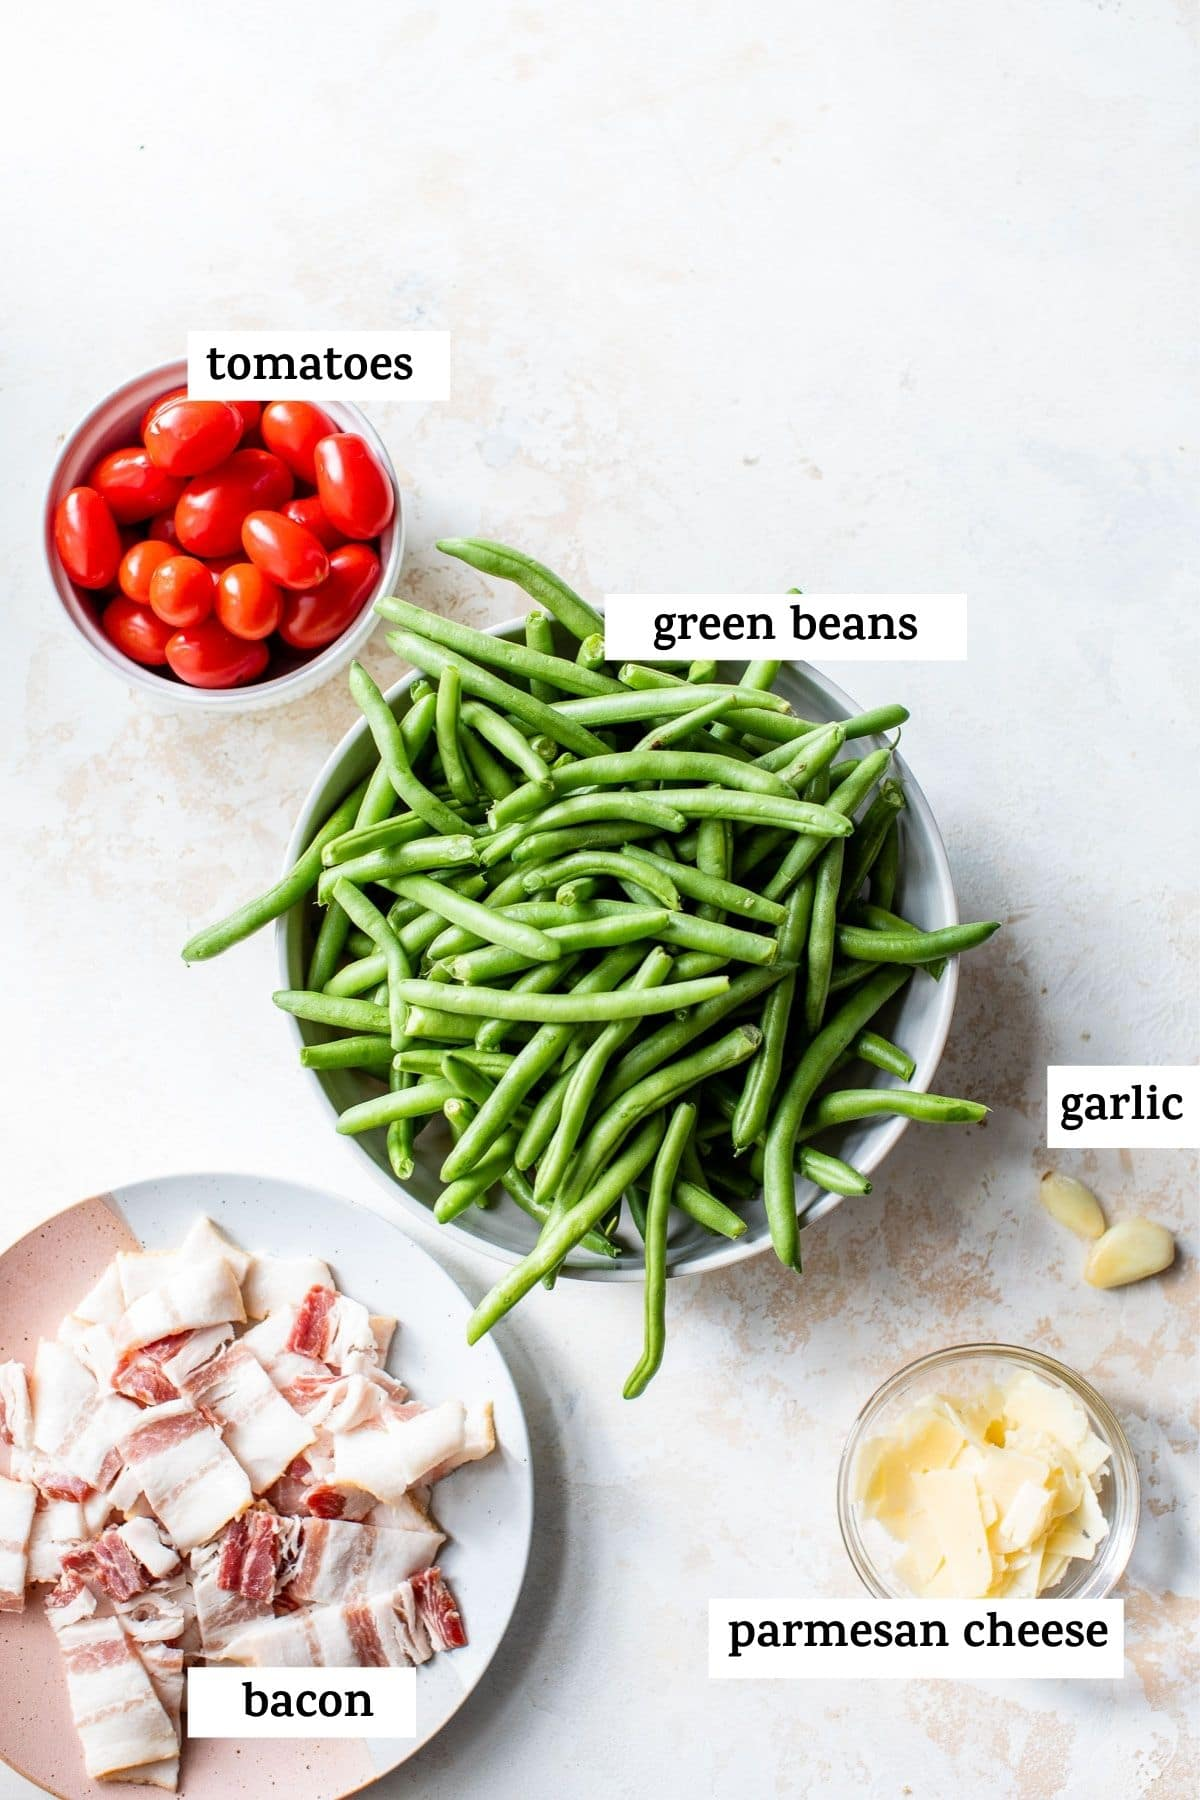 ingredients to make a green bean salad with text overlay